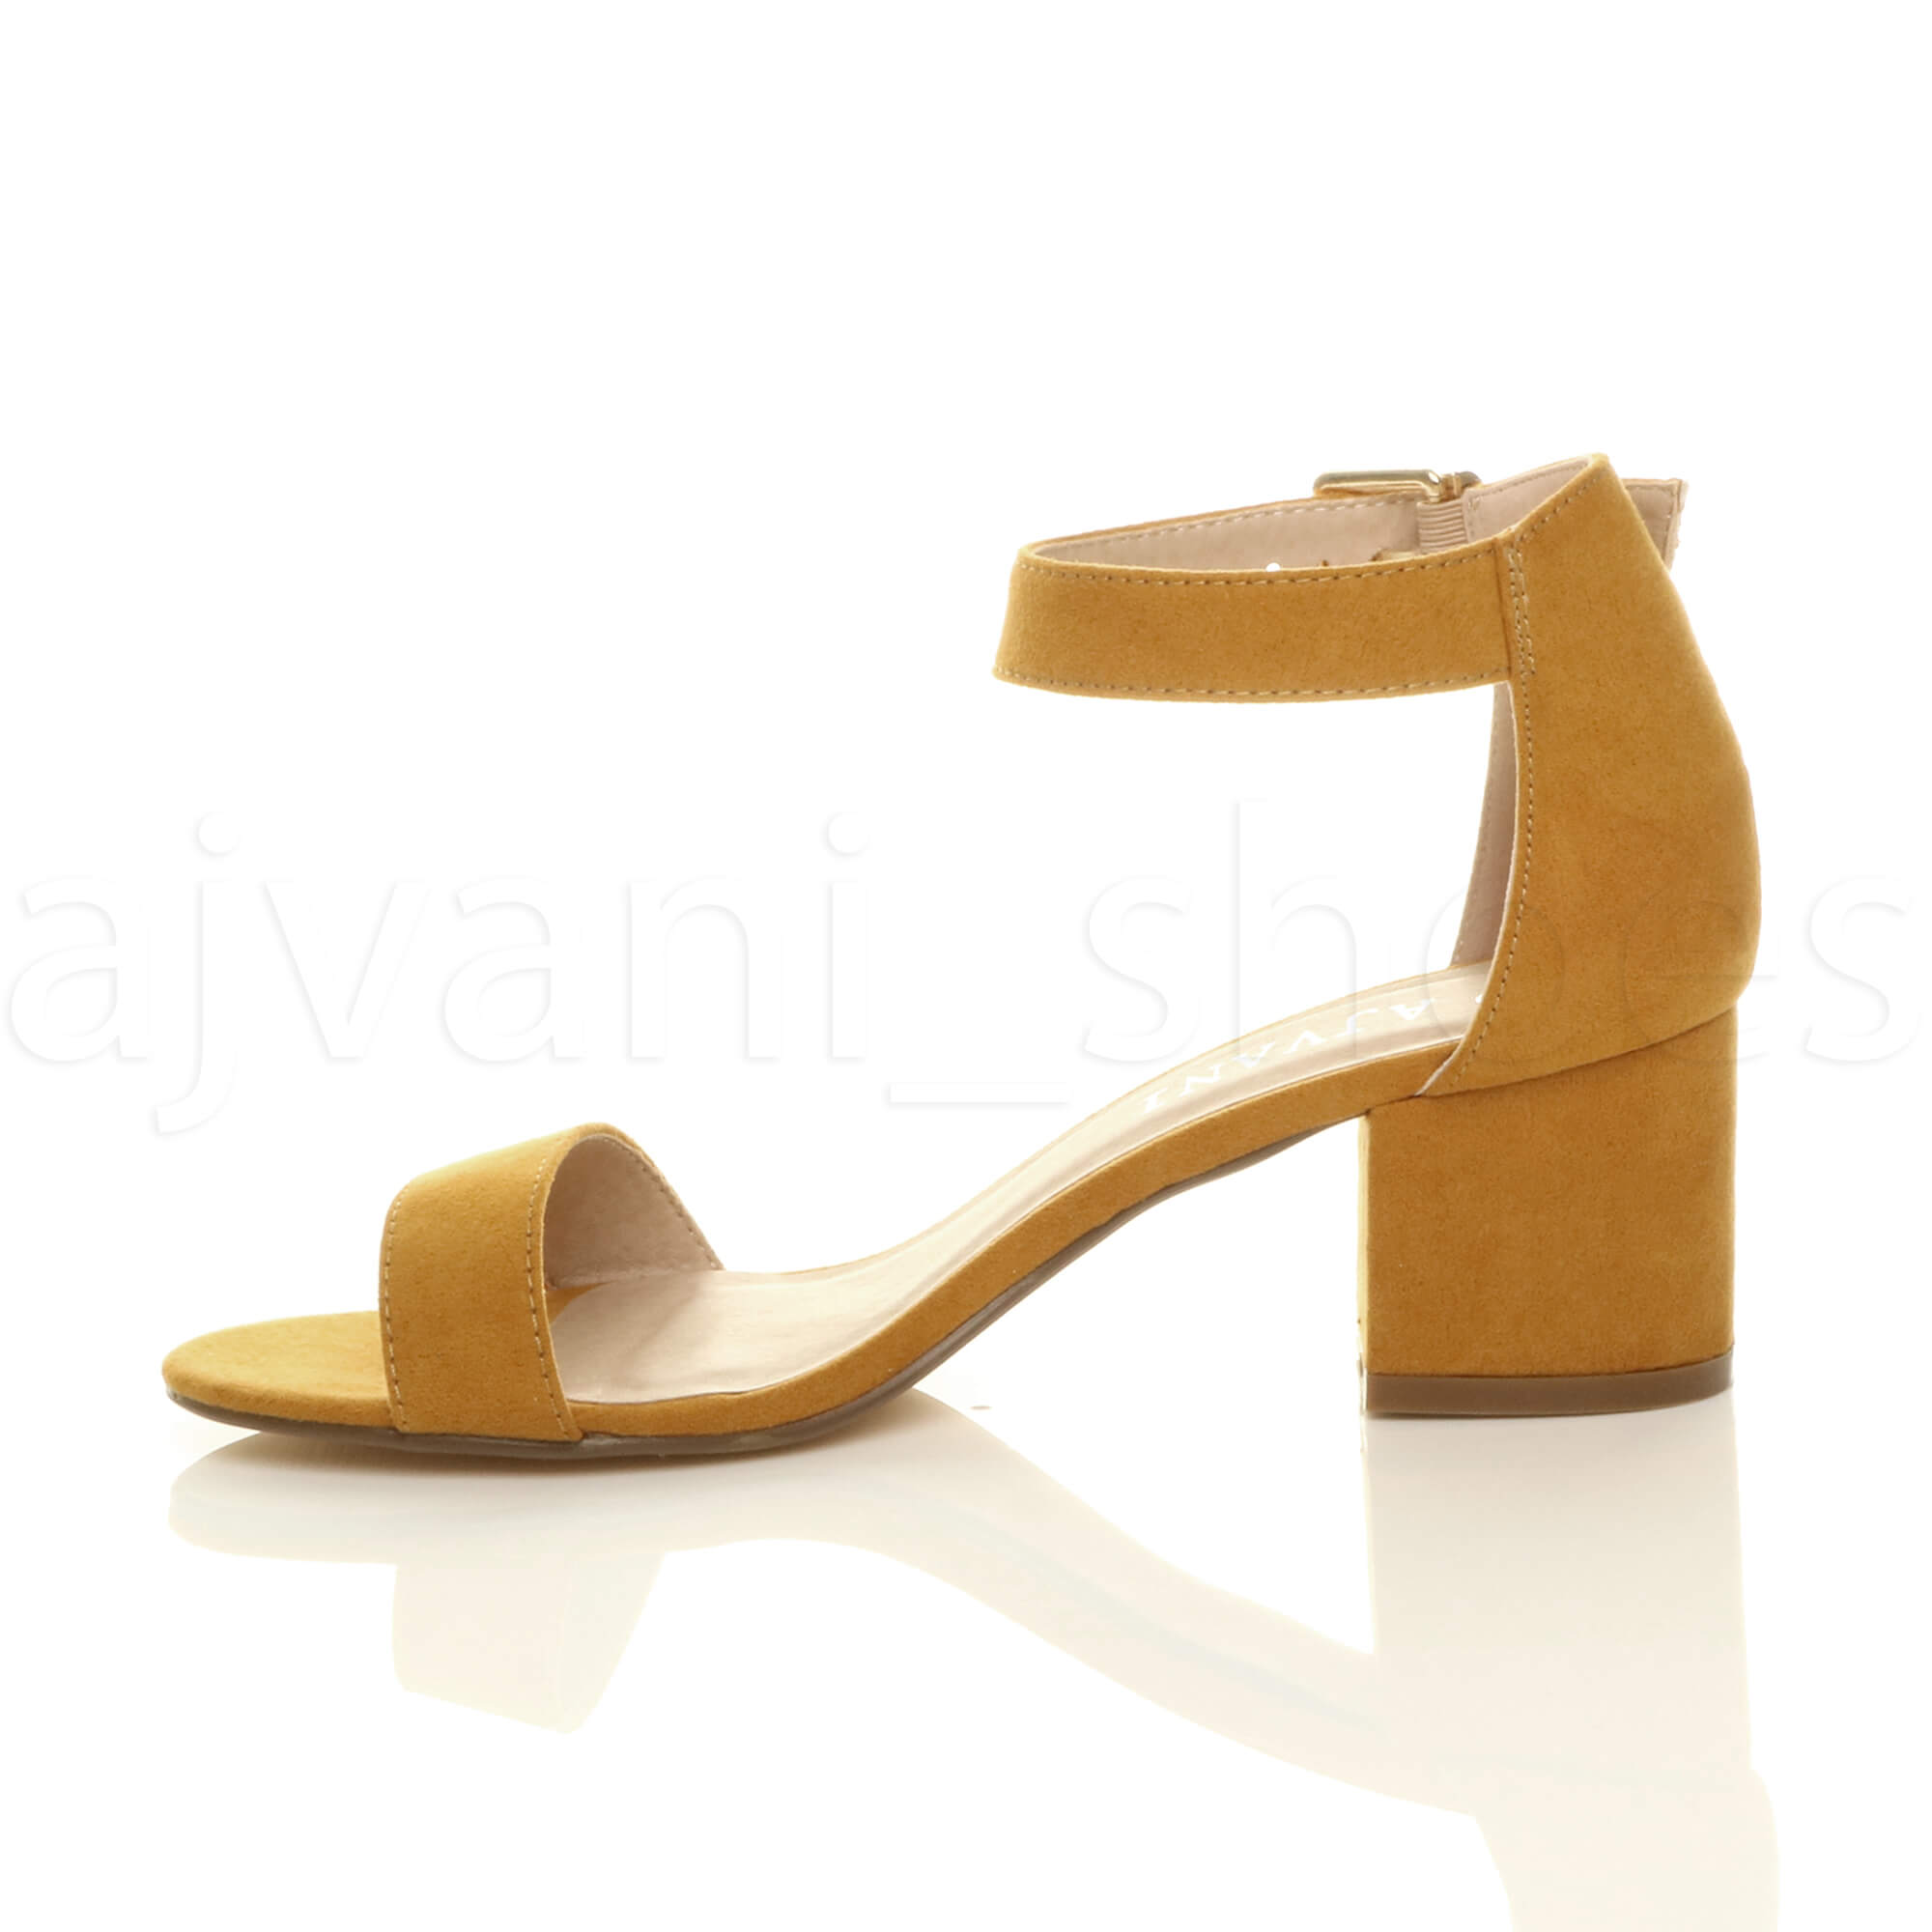 WOMENS-LADIES-LOW-MID-BLOCK-HEEL-ANKLE-STRAP-BUCKLE-PARTY-STRAPPY-SANDALS-SIZE thumbnail 107